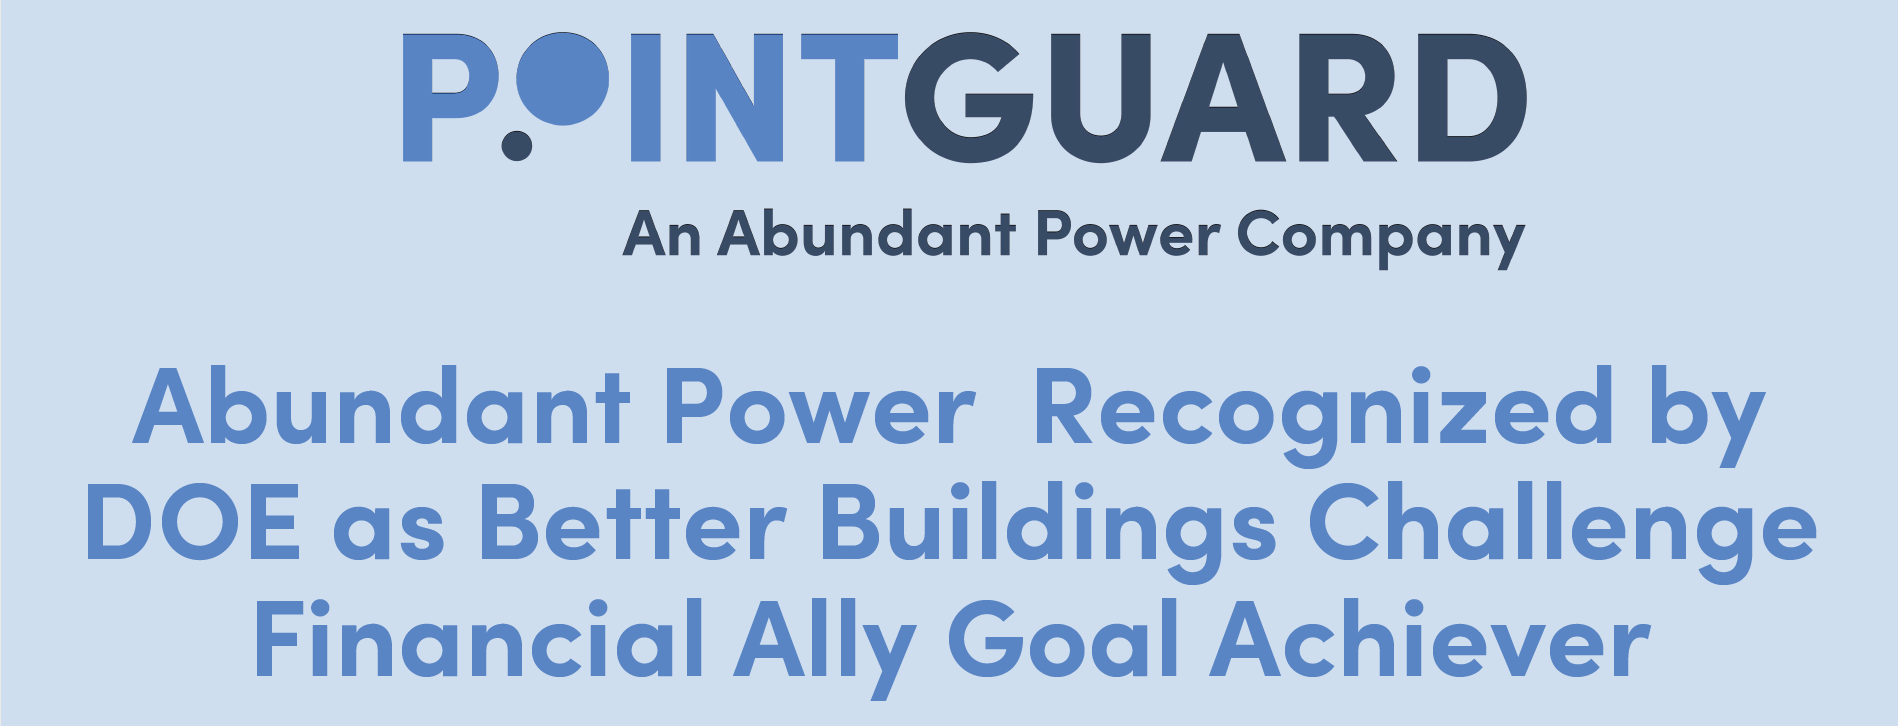 Abundant Now a Better Buildings Challenge Goal Achiever